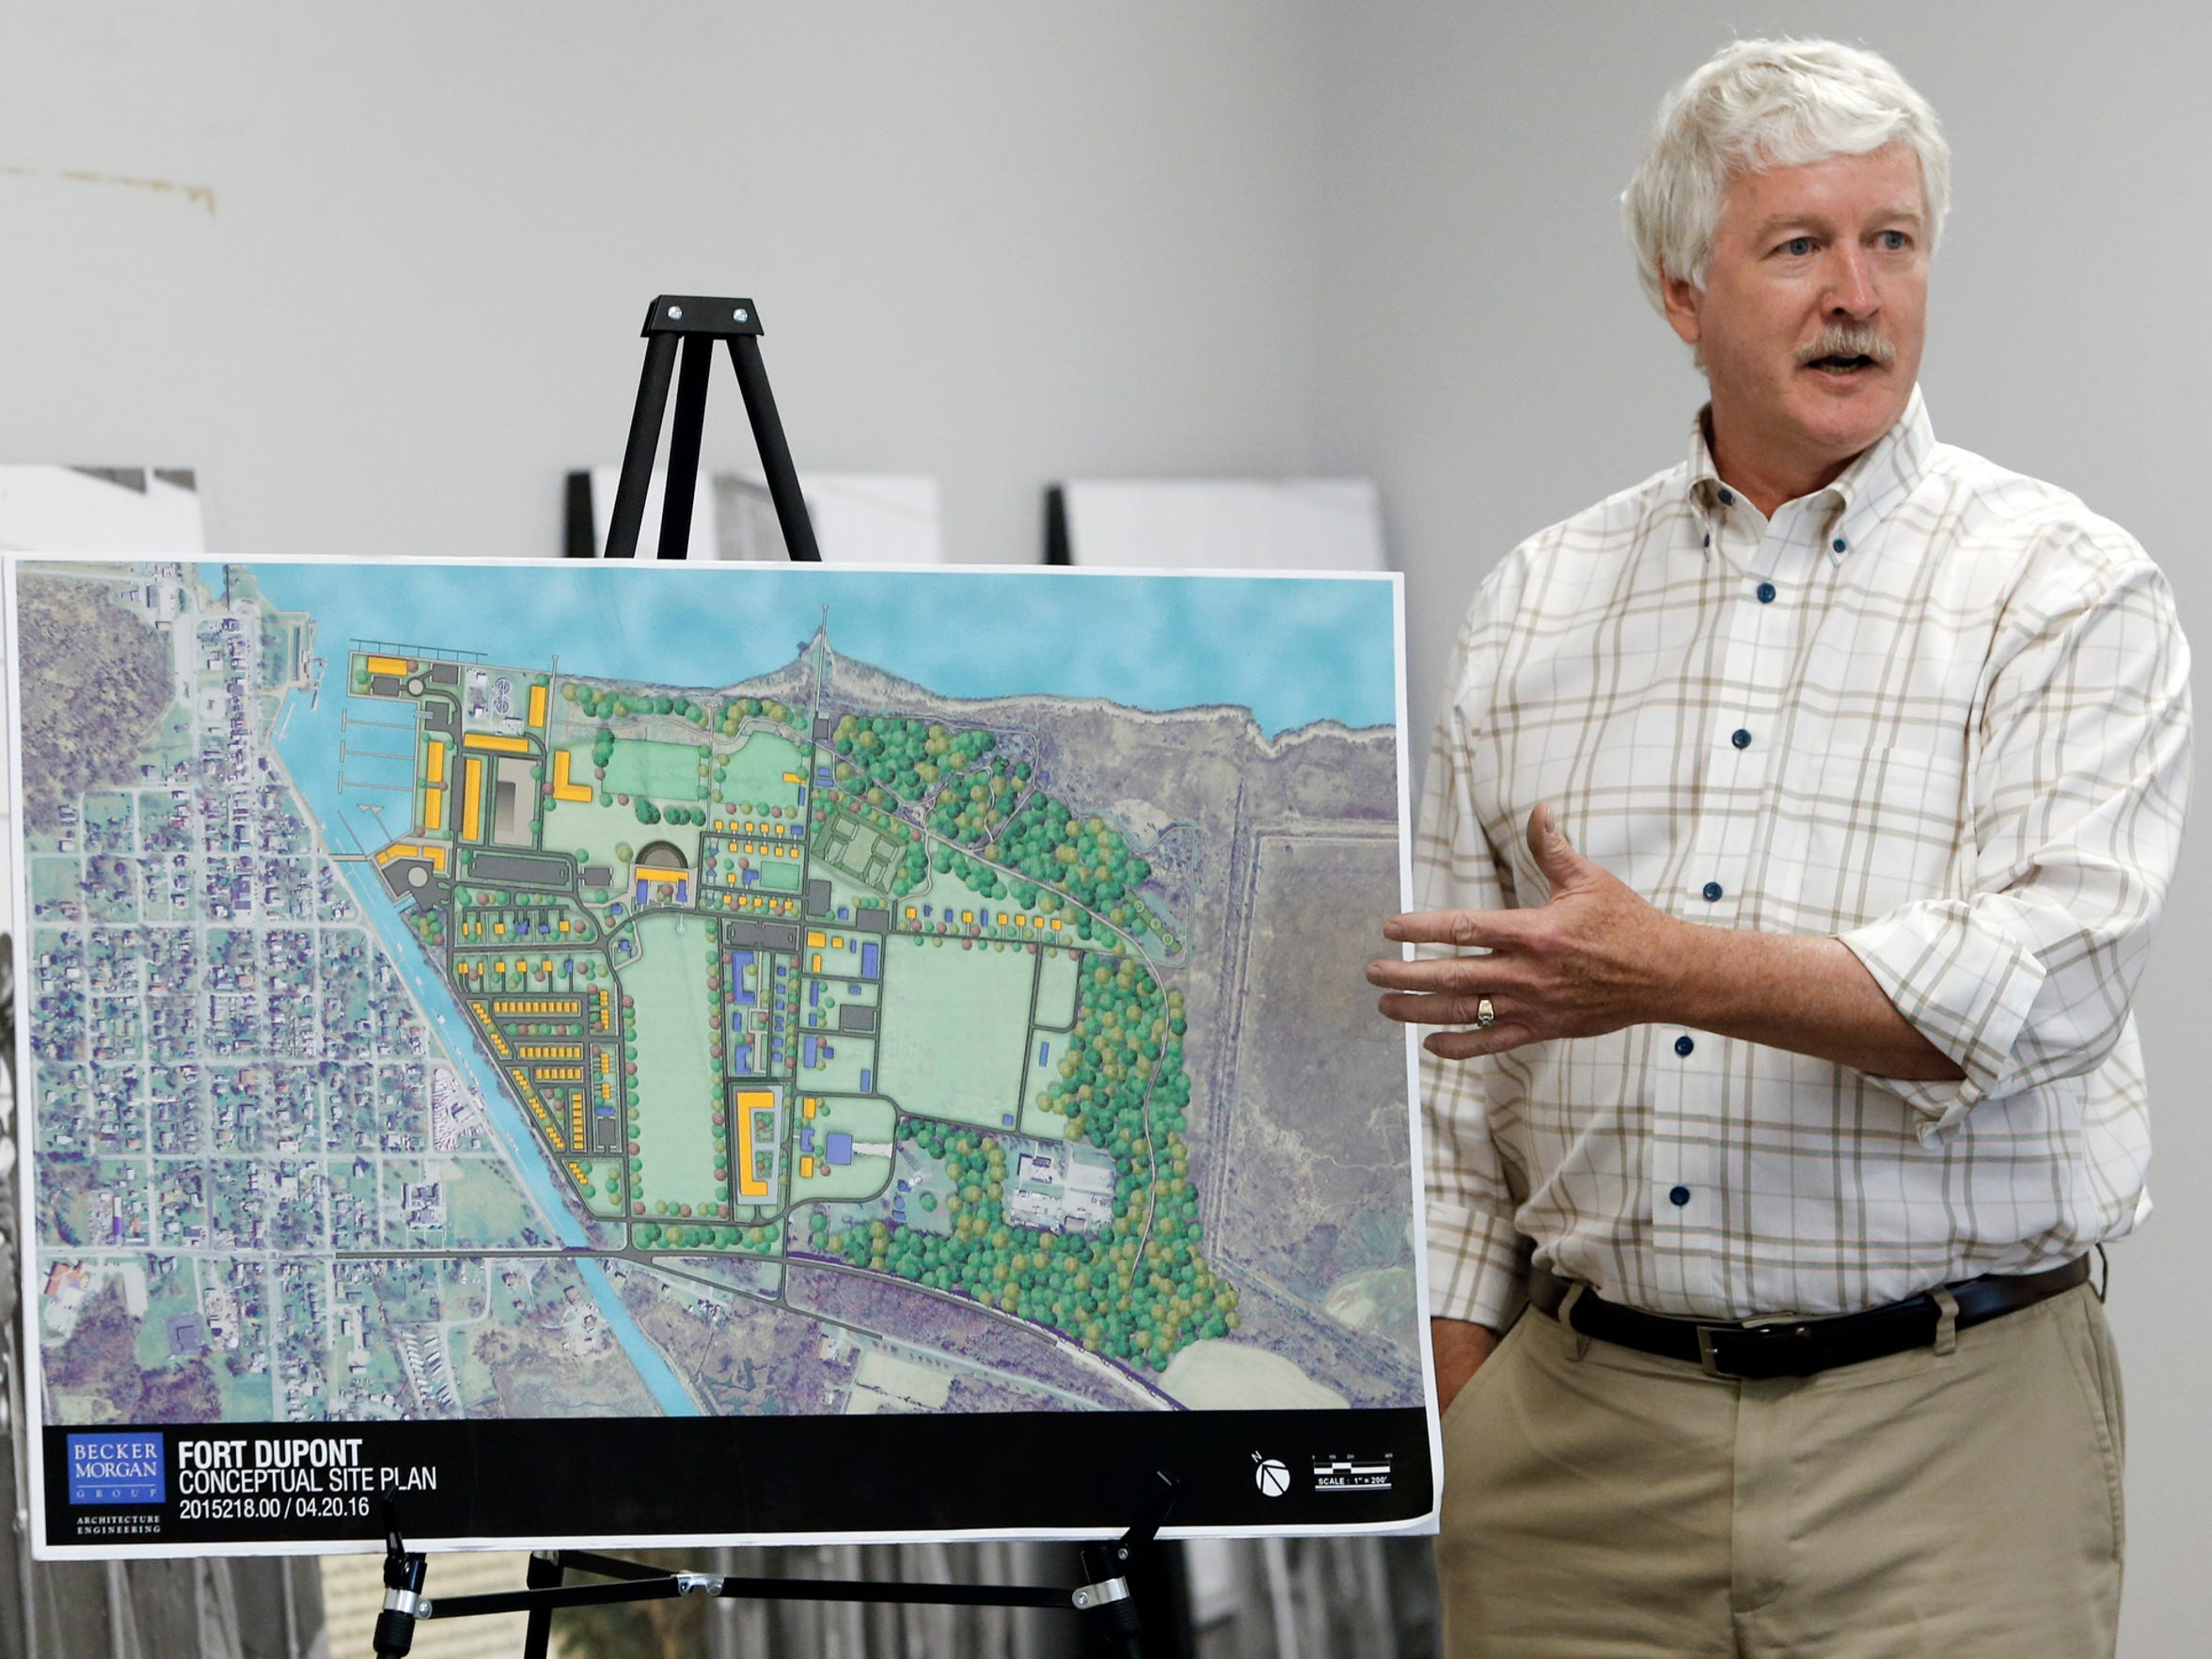 Jeffrey Randol, director of the Fort DuPont Redevelopment Corporation, discusses the master plan for the fort's reuse and possible annexation by Delaware City at the Delaware City Library Tuesday.